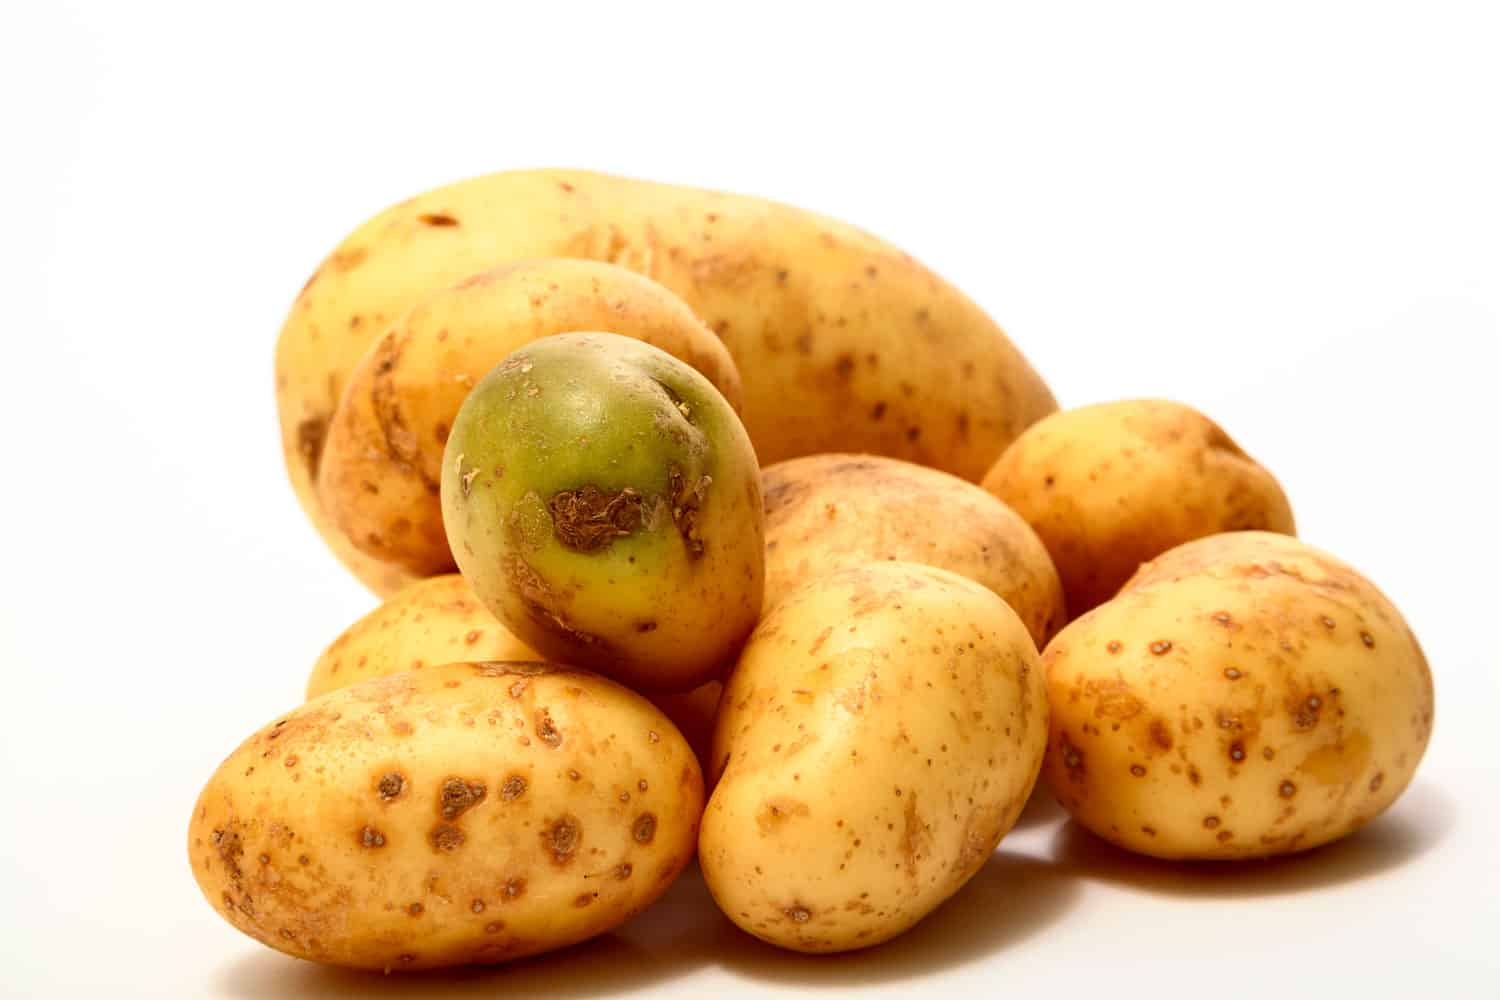 A potato exposed to sunlight turning green on a white background